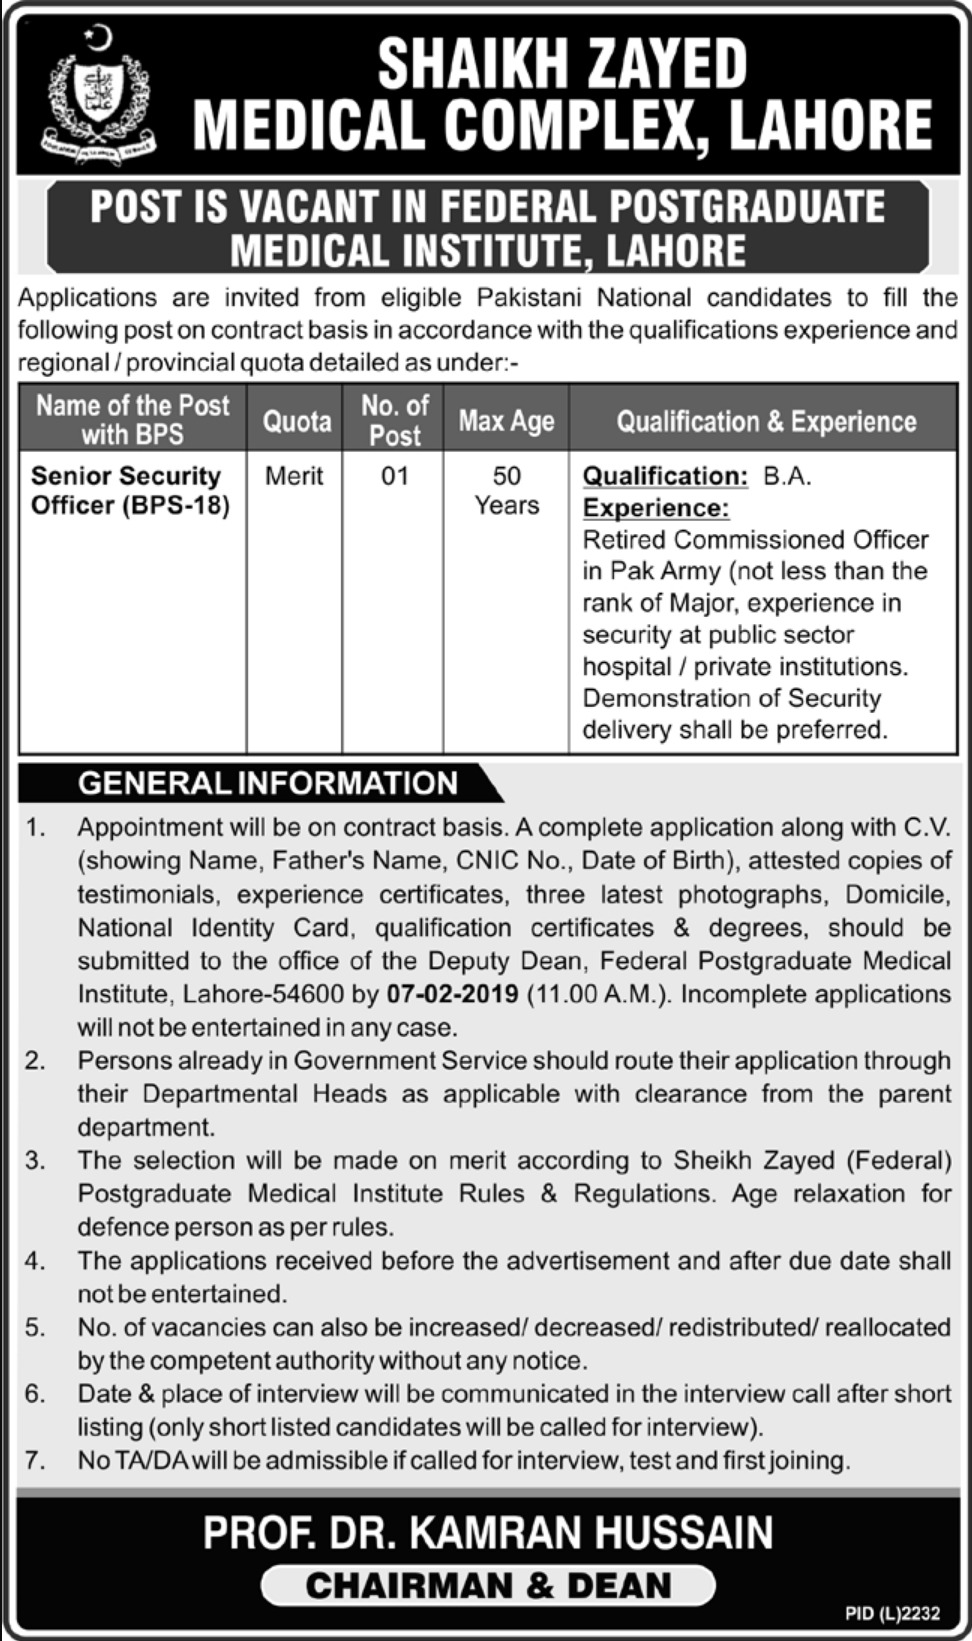 Shaikh Zayed Medical Complex Lahore Jobs 2019